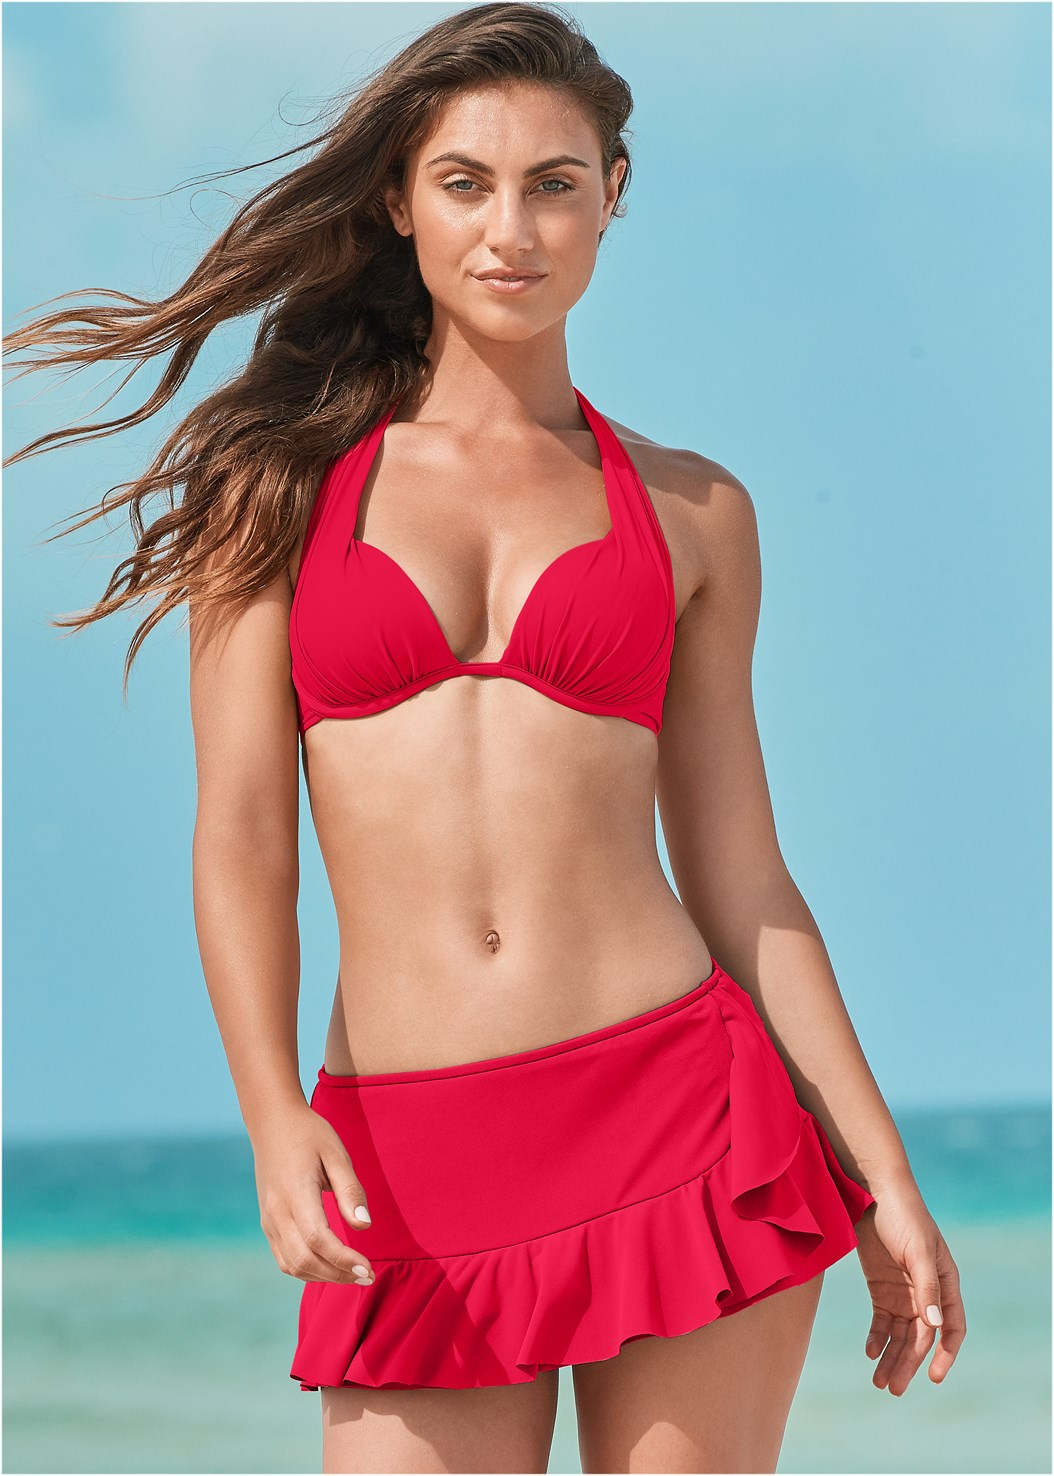 Ruffle Swim Skirt,Marilyn Underwire Push Up Halter Top,Jillian Underwire Top,Triangle String Bikini Top